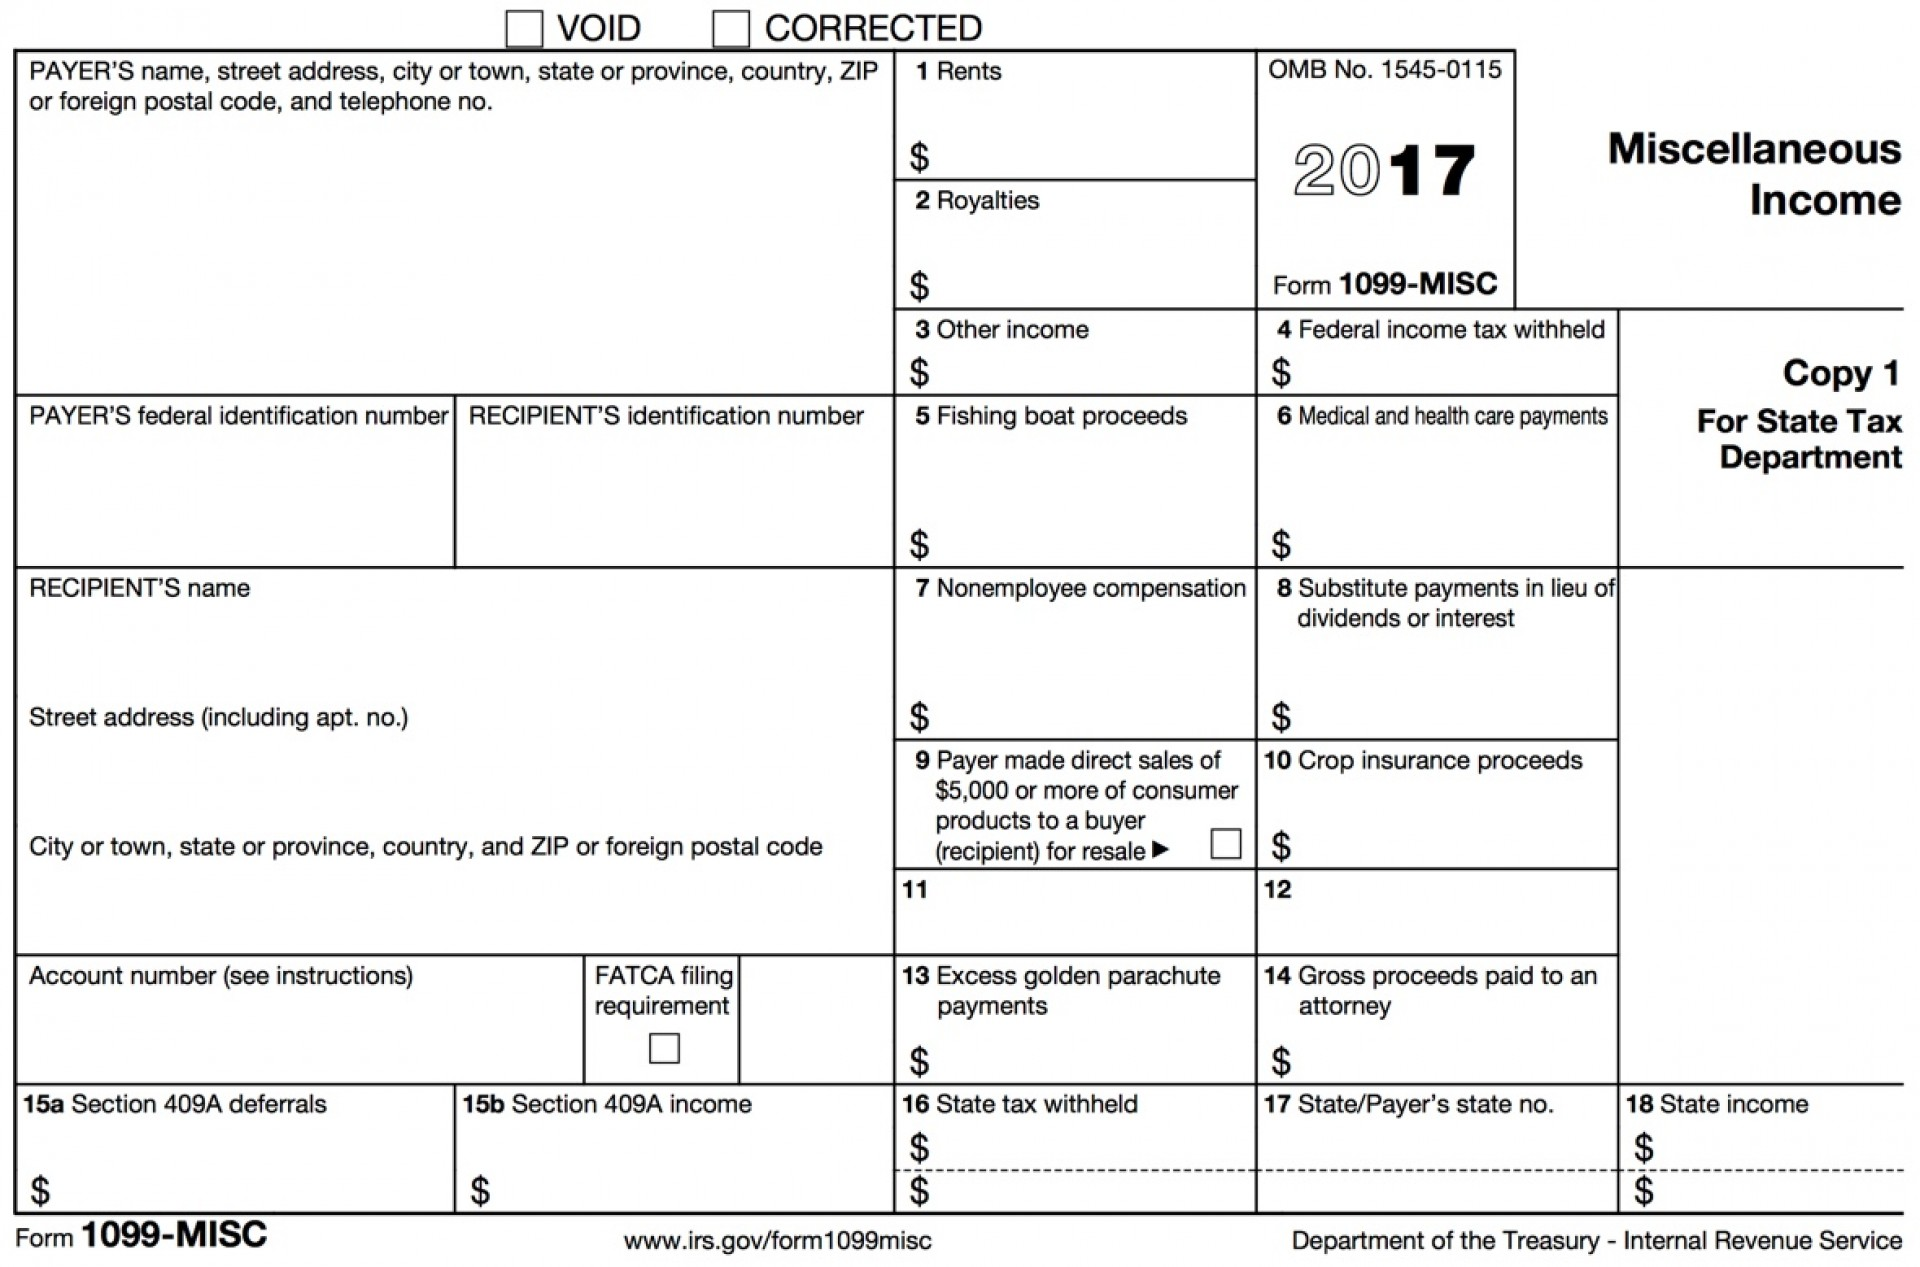 How To Fill Out 1099 Form Online